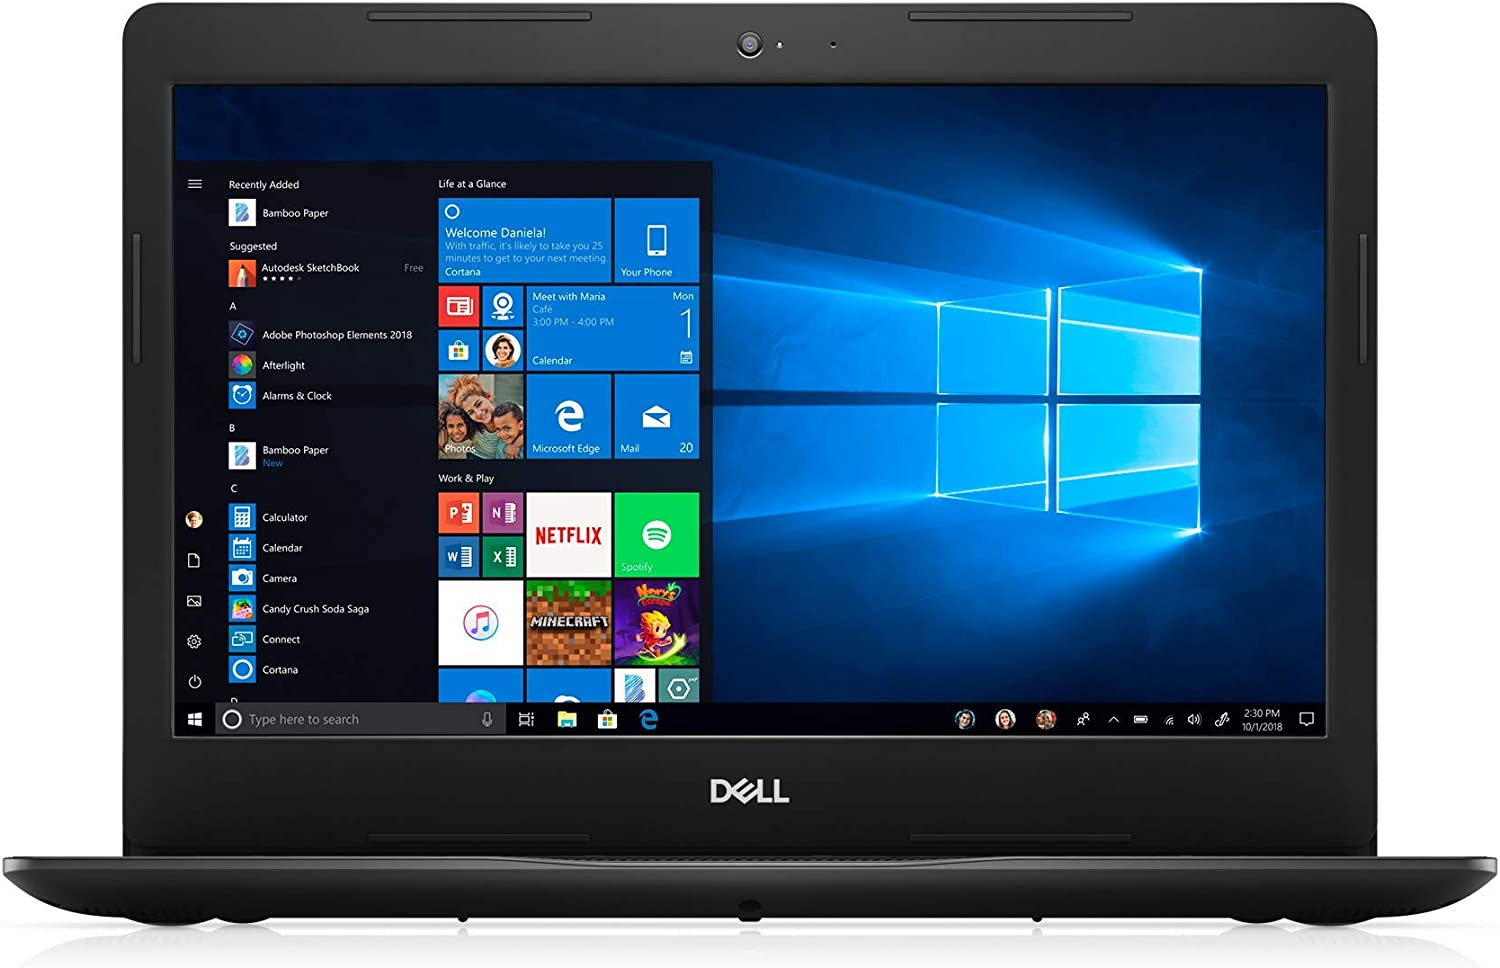 2020 Newest Dell Inspiron 14 inch Laptop, Intel Core i5-1035G4 (Beat i7-7500) 10 Geneartion, 8GB RAM, 256GB SSD, HDMI, WiFi, Intel UHD Graphics, Bluetooth, Windows 10 (Renewed)